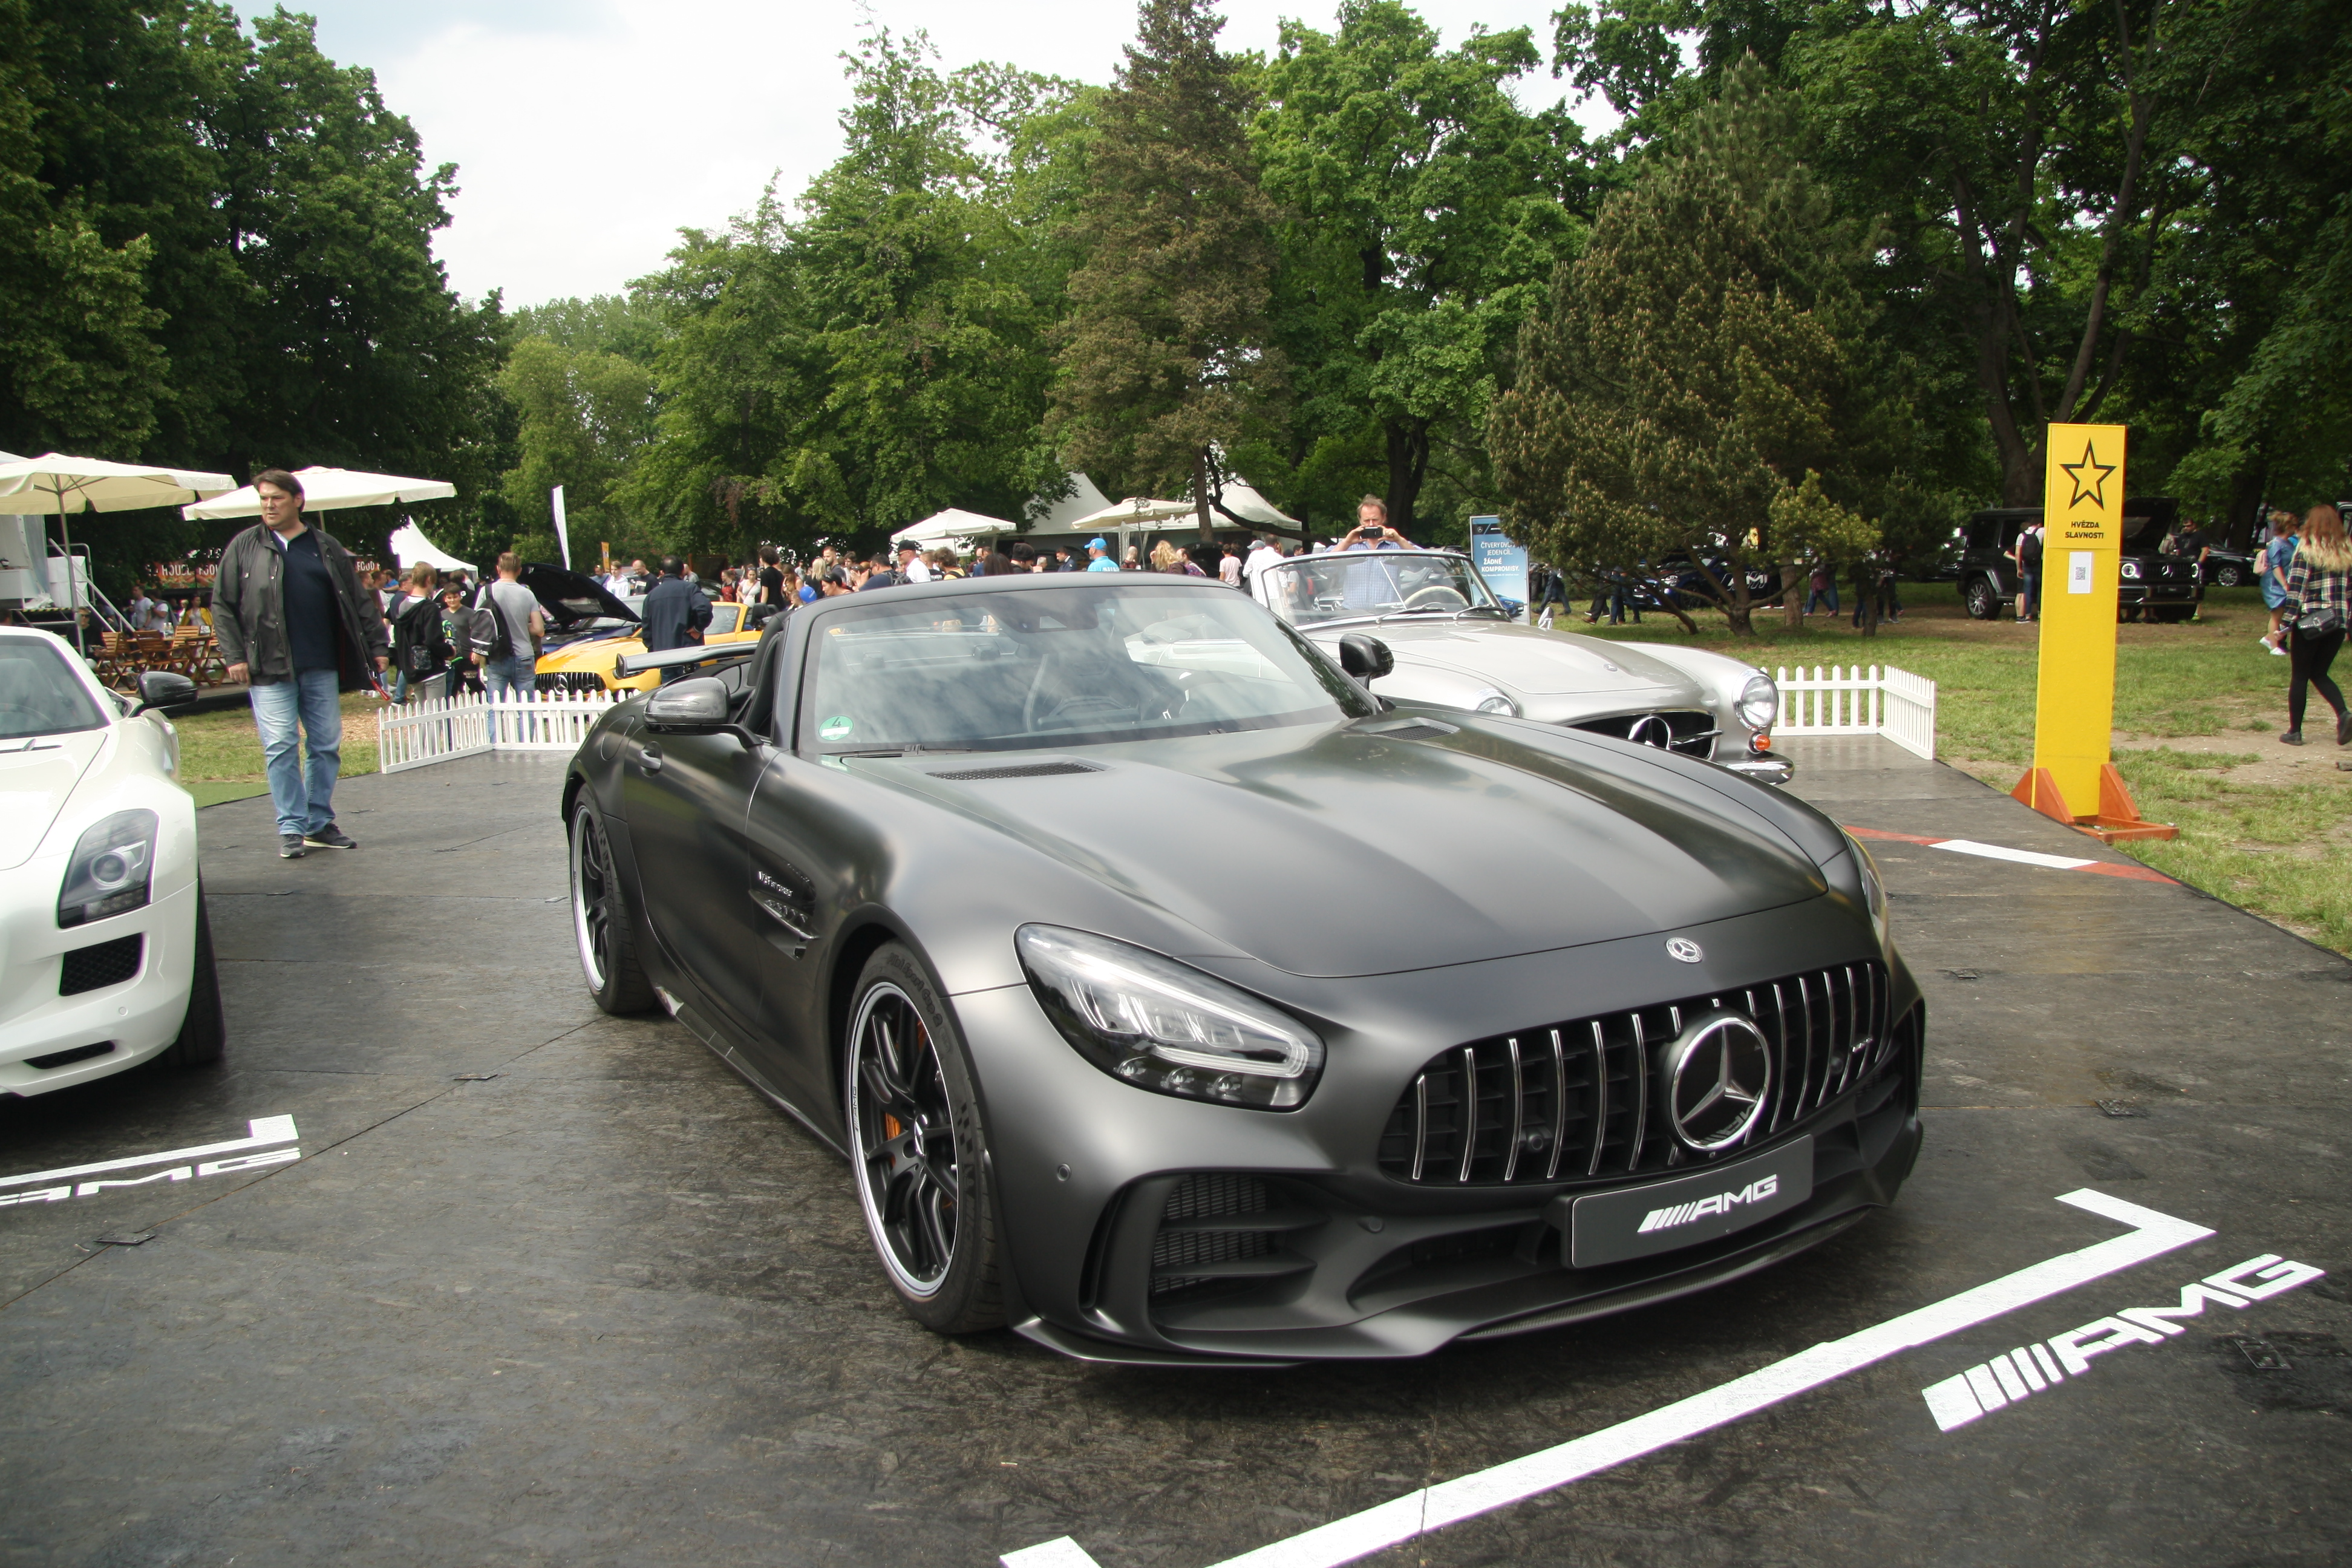 File Mercedes Benz Amg Gt R Roadster 2019 At Legendy 2019 In Prague Jpg Wikimedia Commons